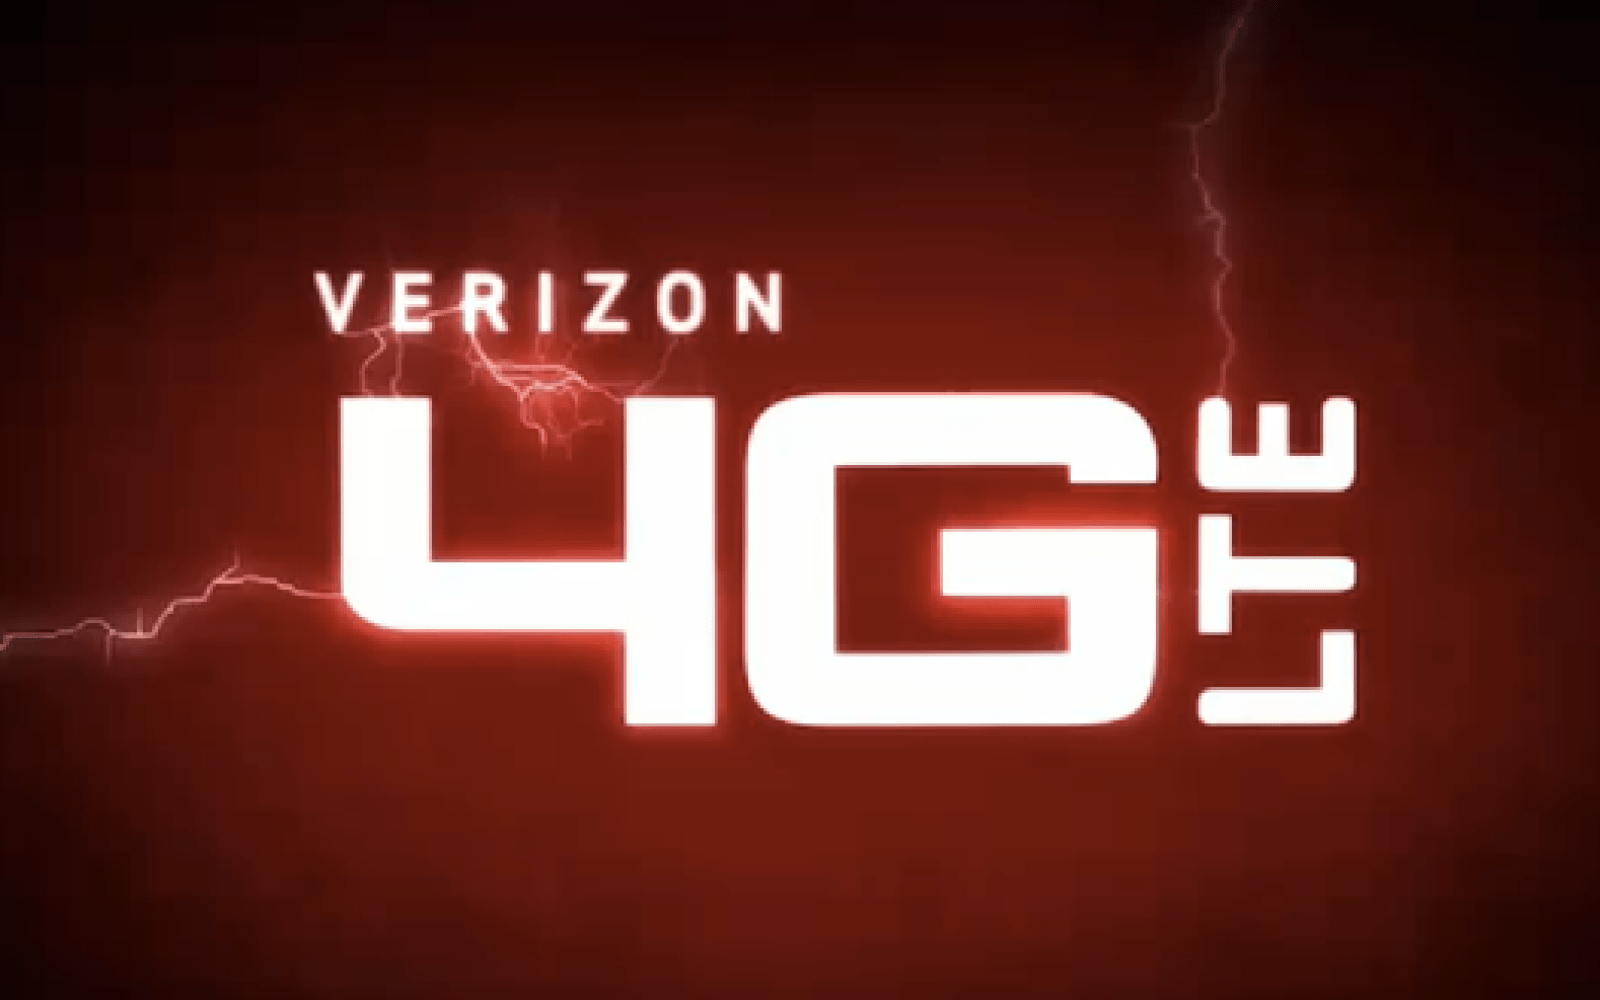 Verizon follows AT&T w/ increased data for $80 & $100 More Everything plans